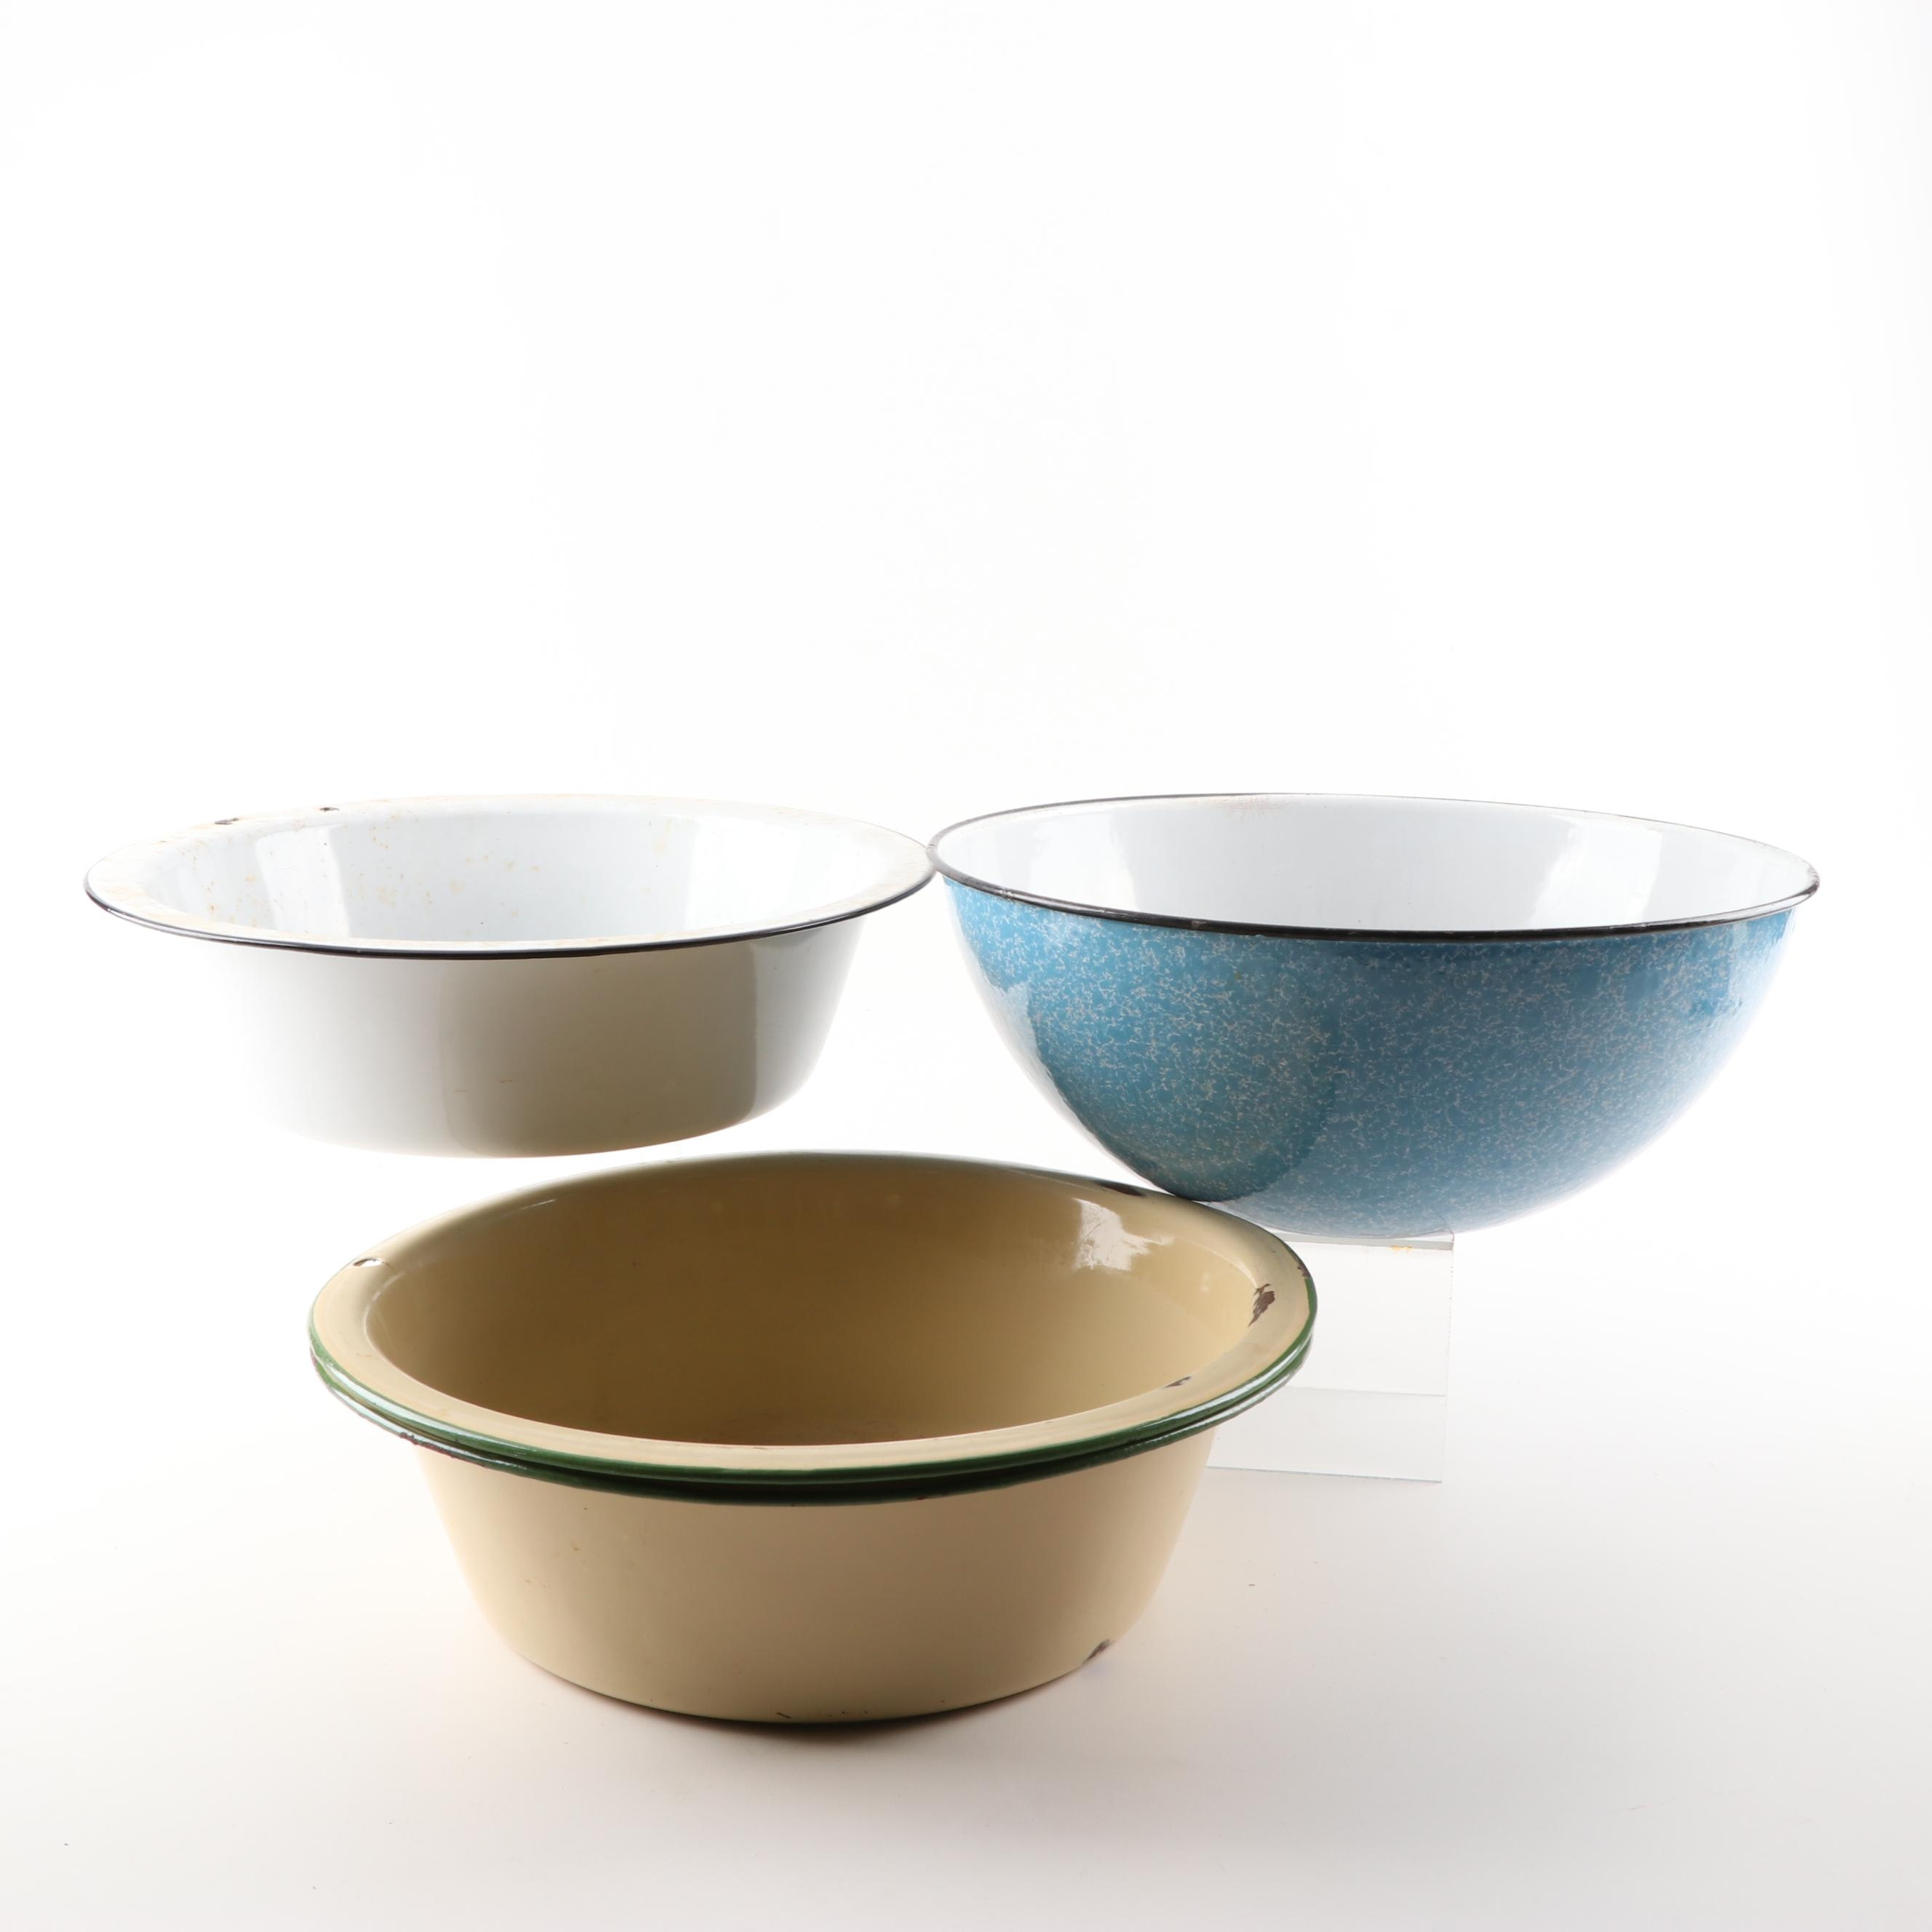 Vintage Enameled Basins